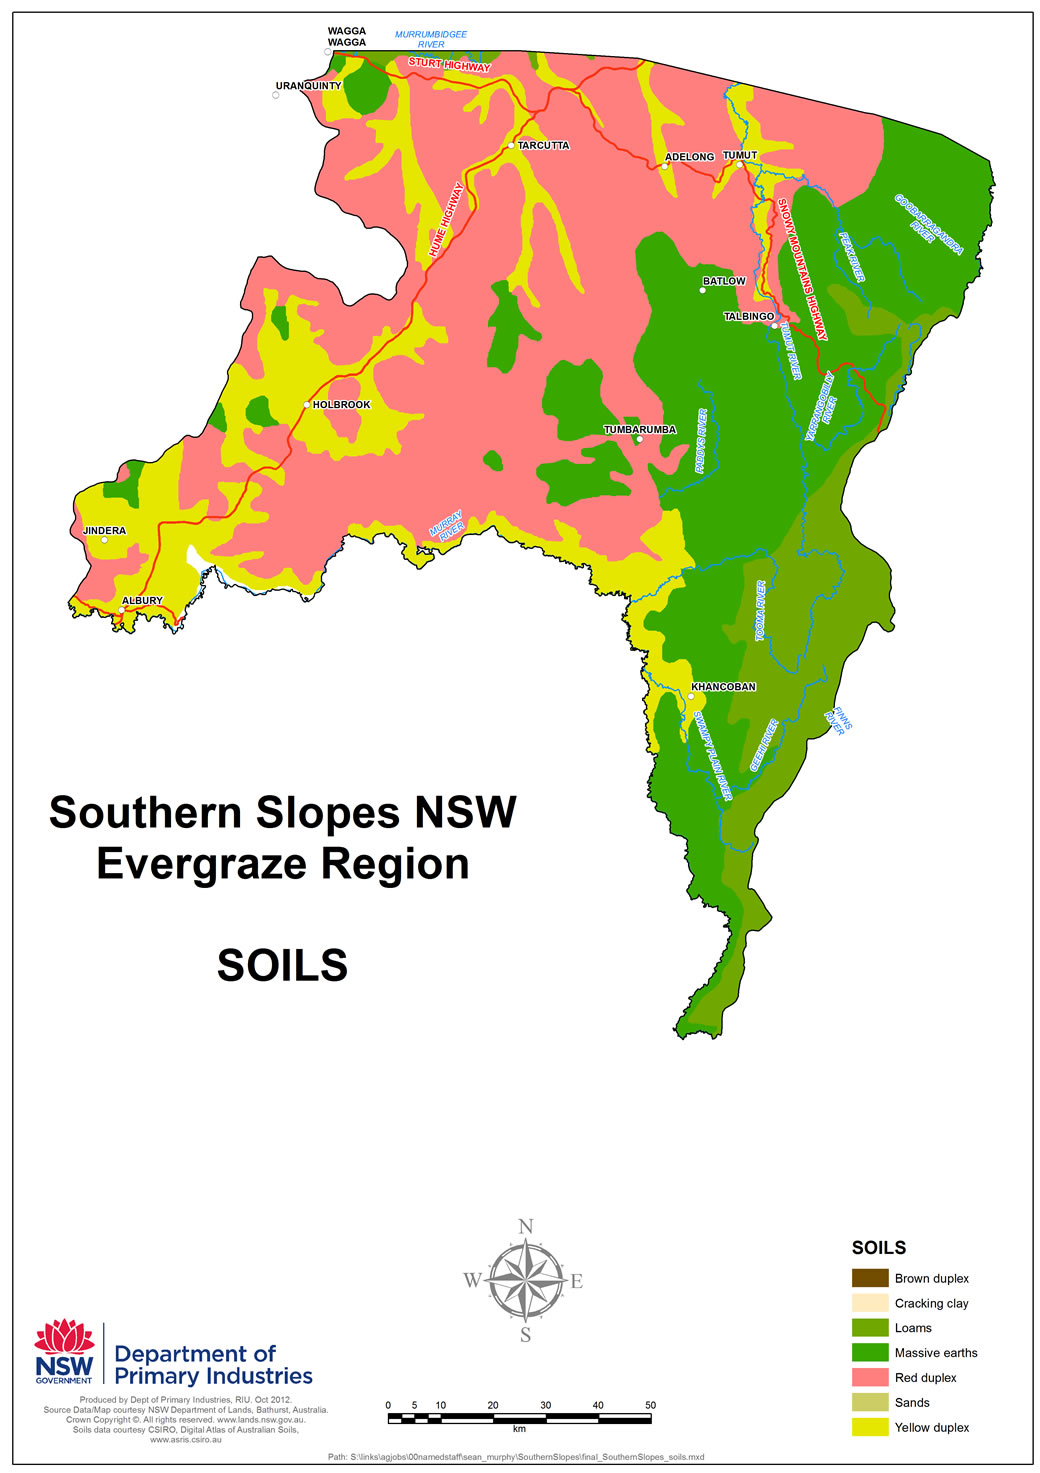 Figure 2. Soils of Southern Slopes NSW.